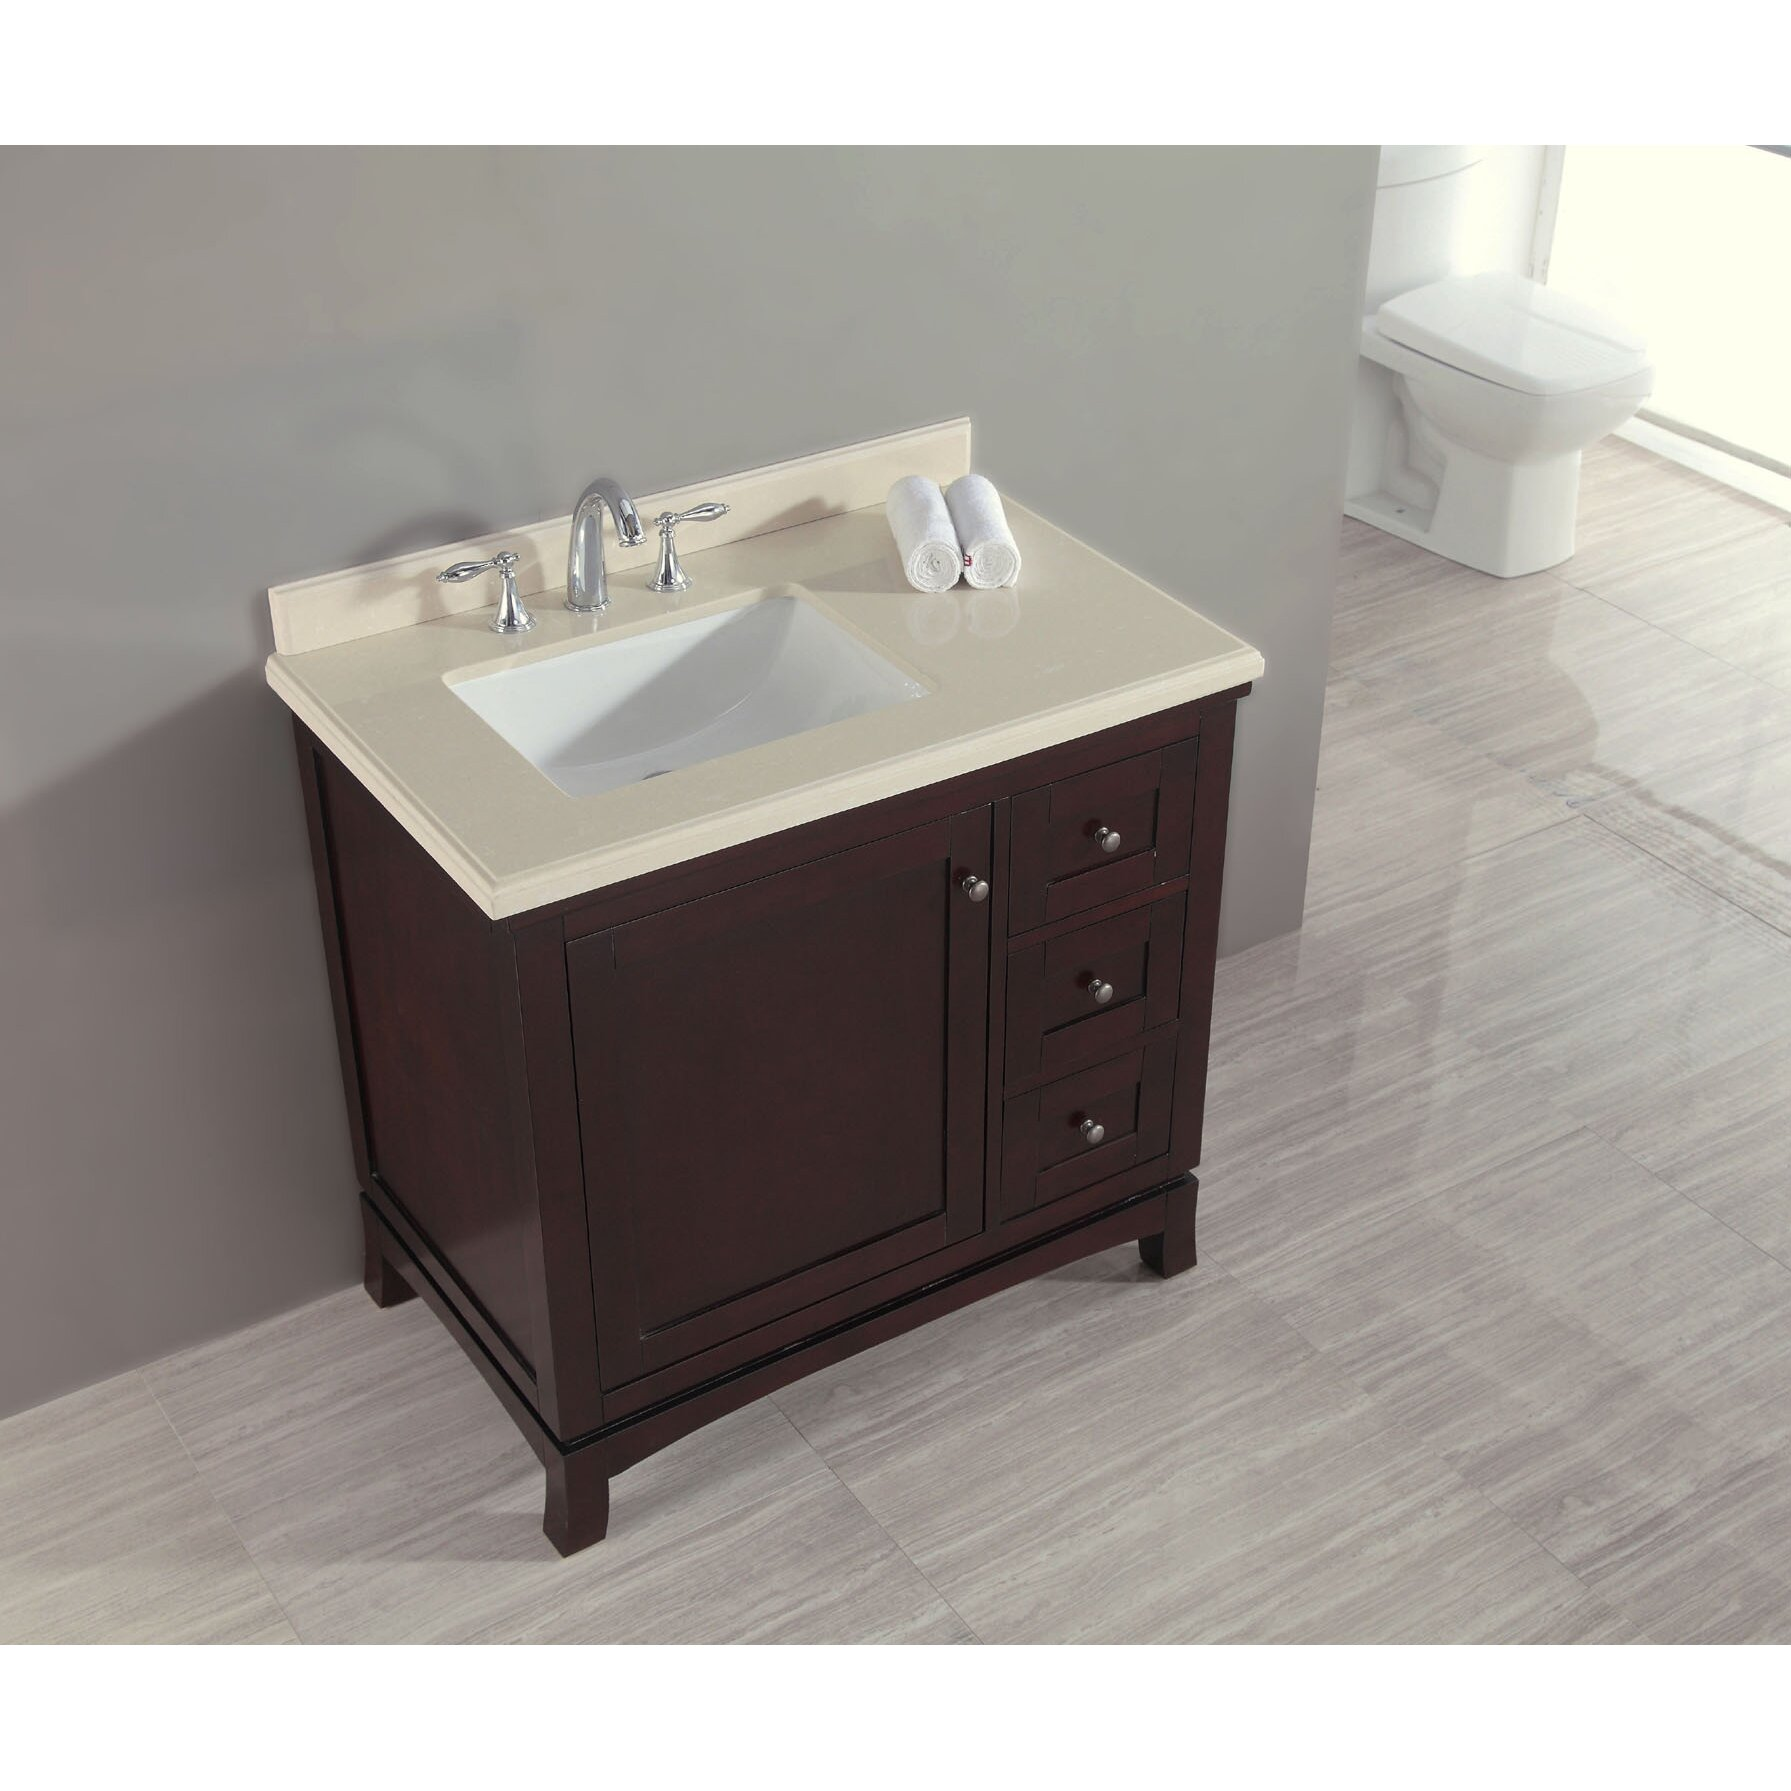 Ove Decors Valega 36 Single Bathroom Vanity Set Reviews Wayfair